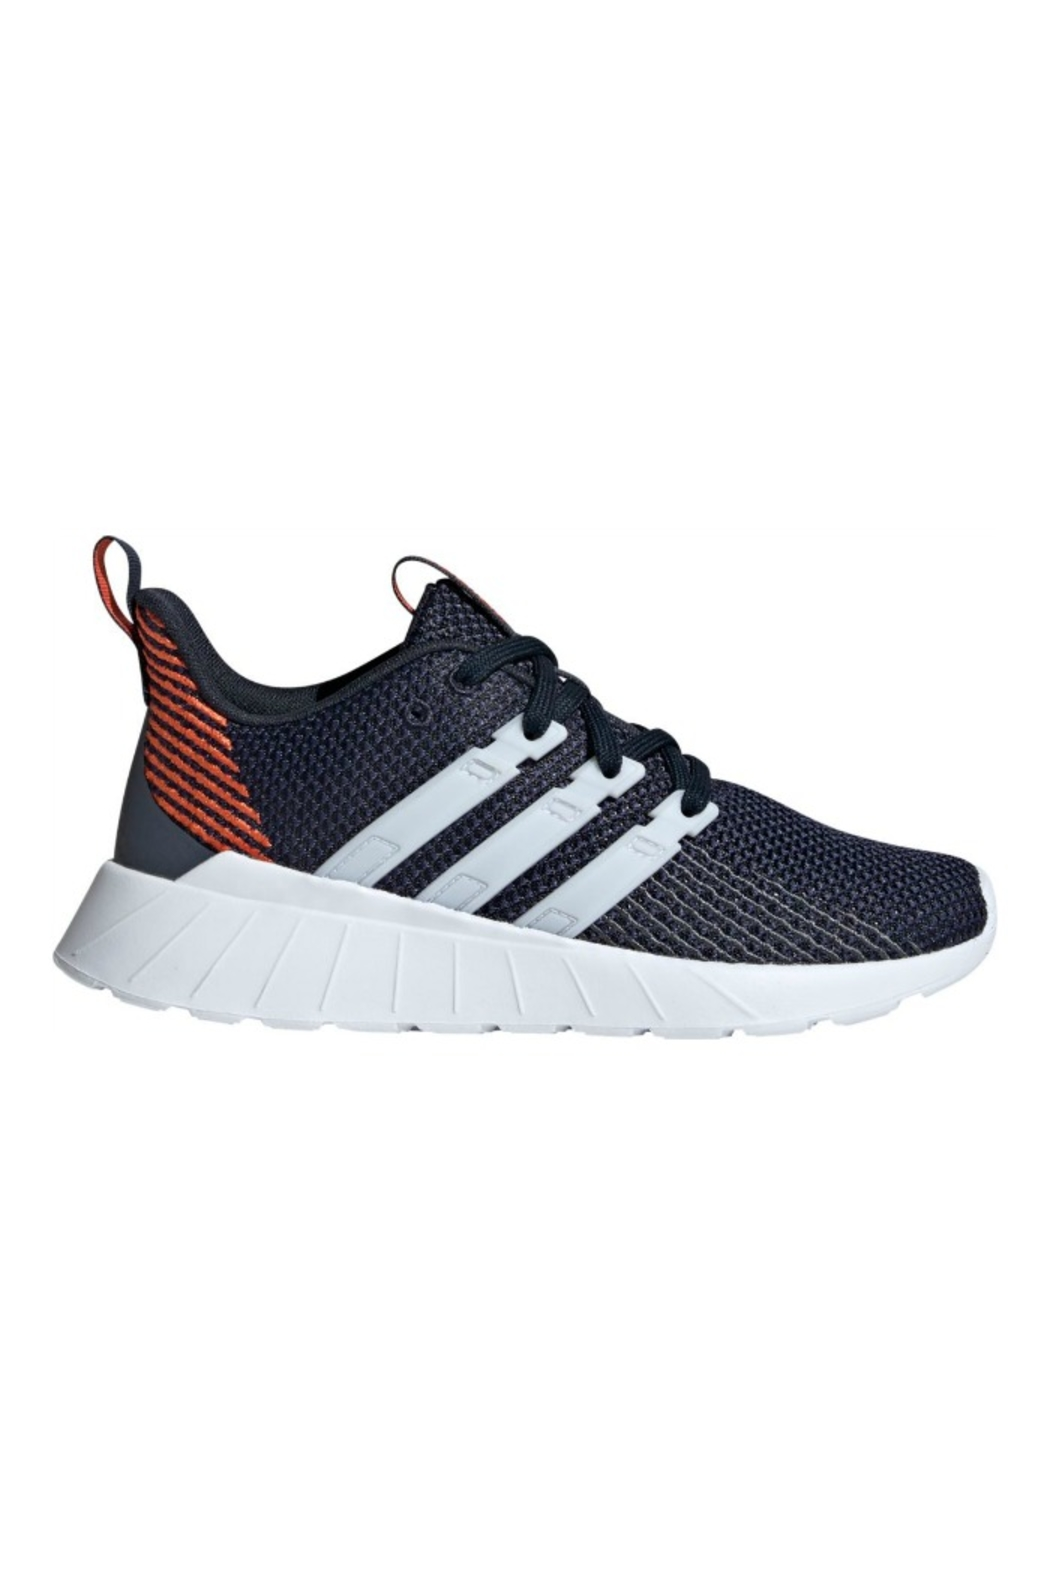 adidas Adidas Queststar Flow Kids - Main Image